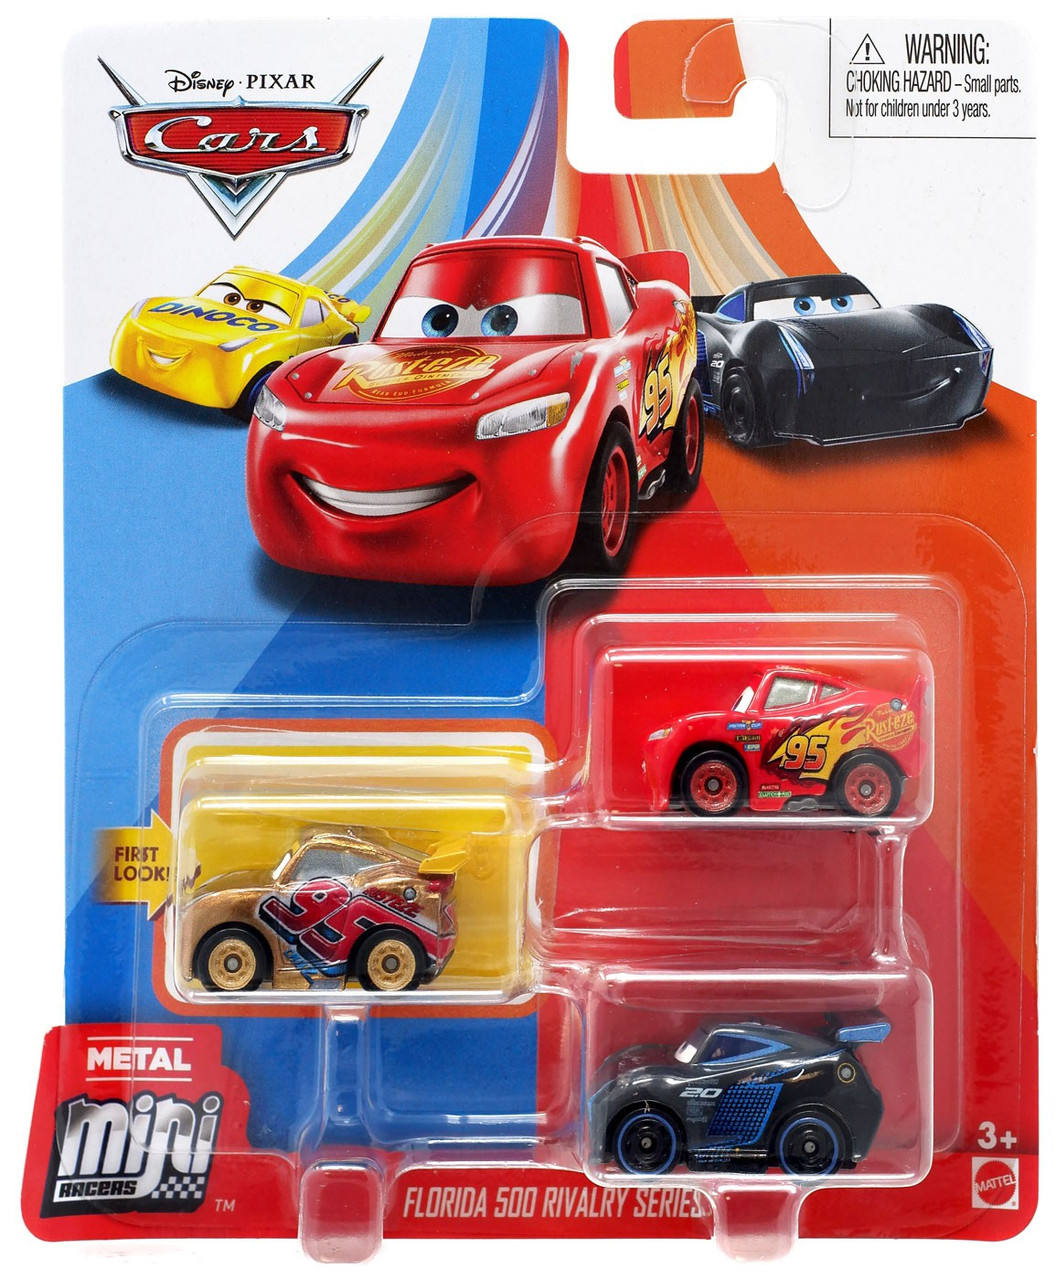 Tv Movie Character Toys Disney Pixar Cars And Cars 3 Die Cast